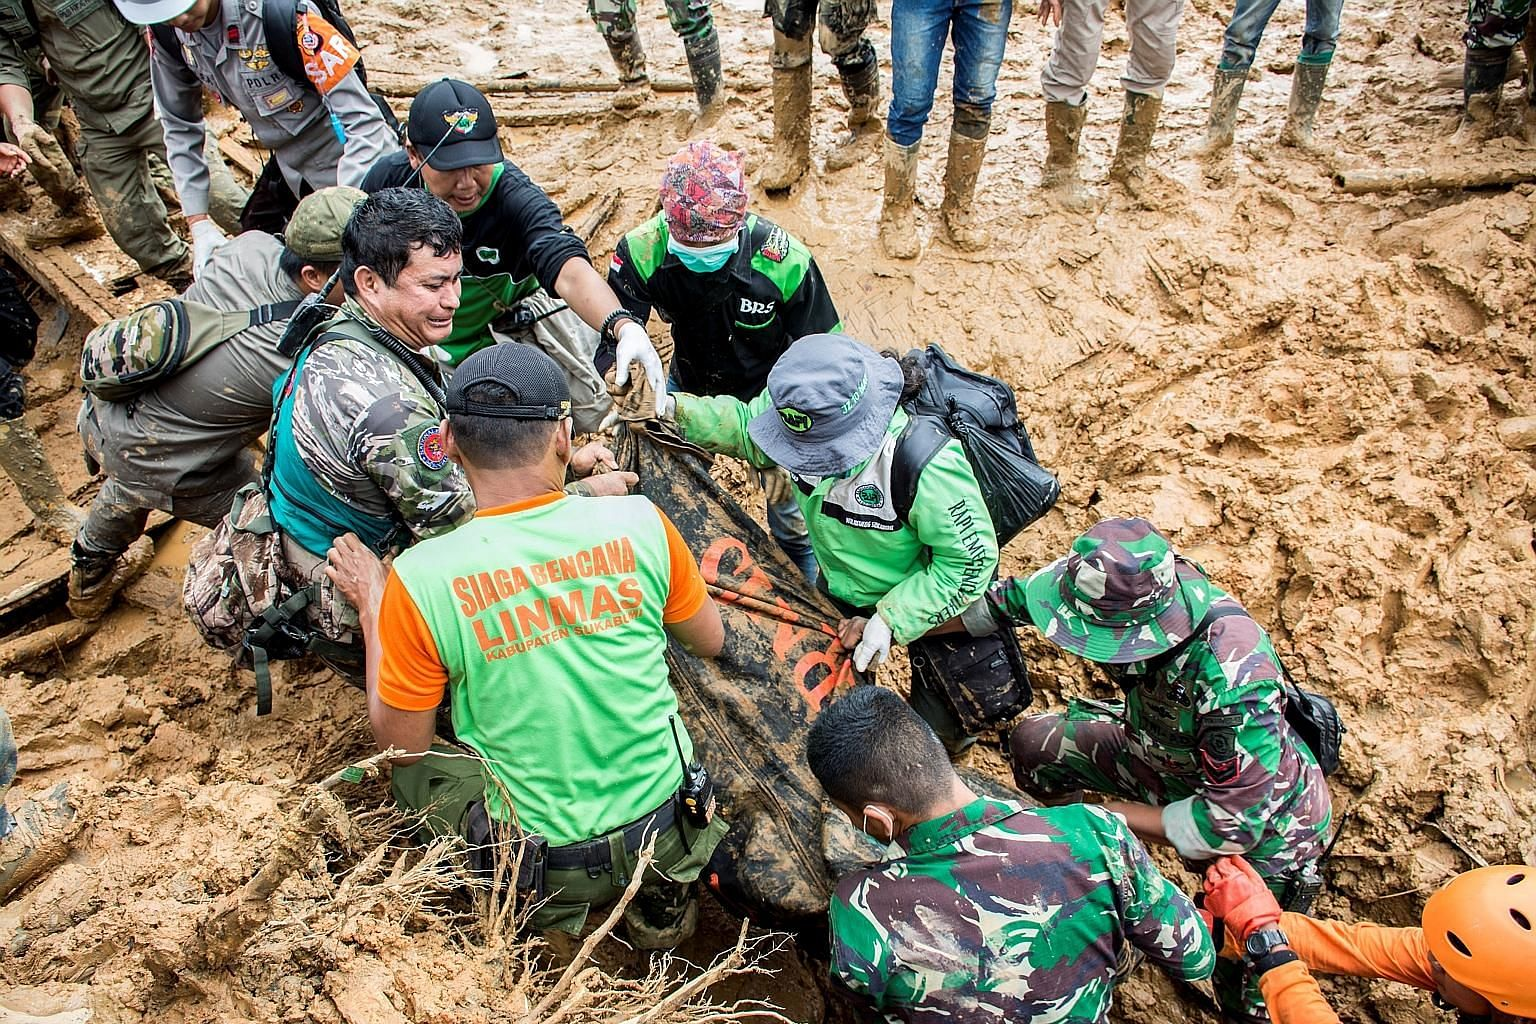 Rescue workers carrying a body bag in Sukabumi, which was hit by a landslide on Monday. At least 15 people had been found dead and 20 people were still missing by Tuesday night, but search and rescue efforts were impeded by four secondary landslides.